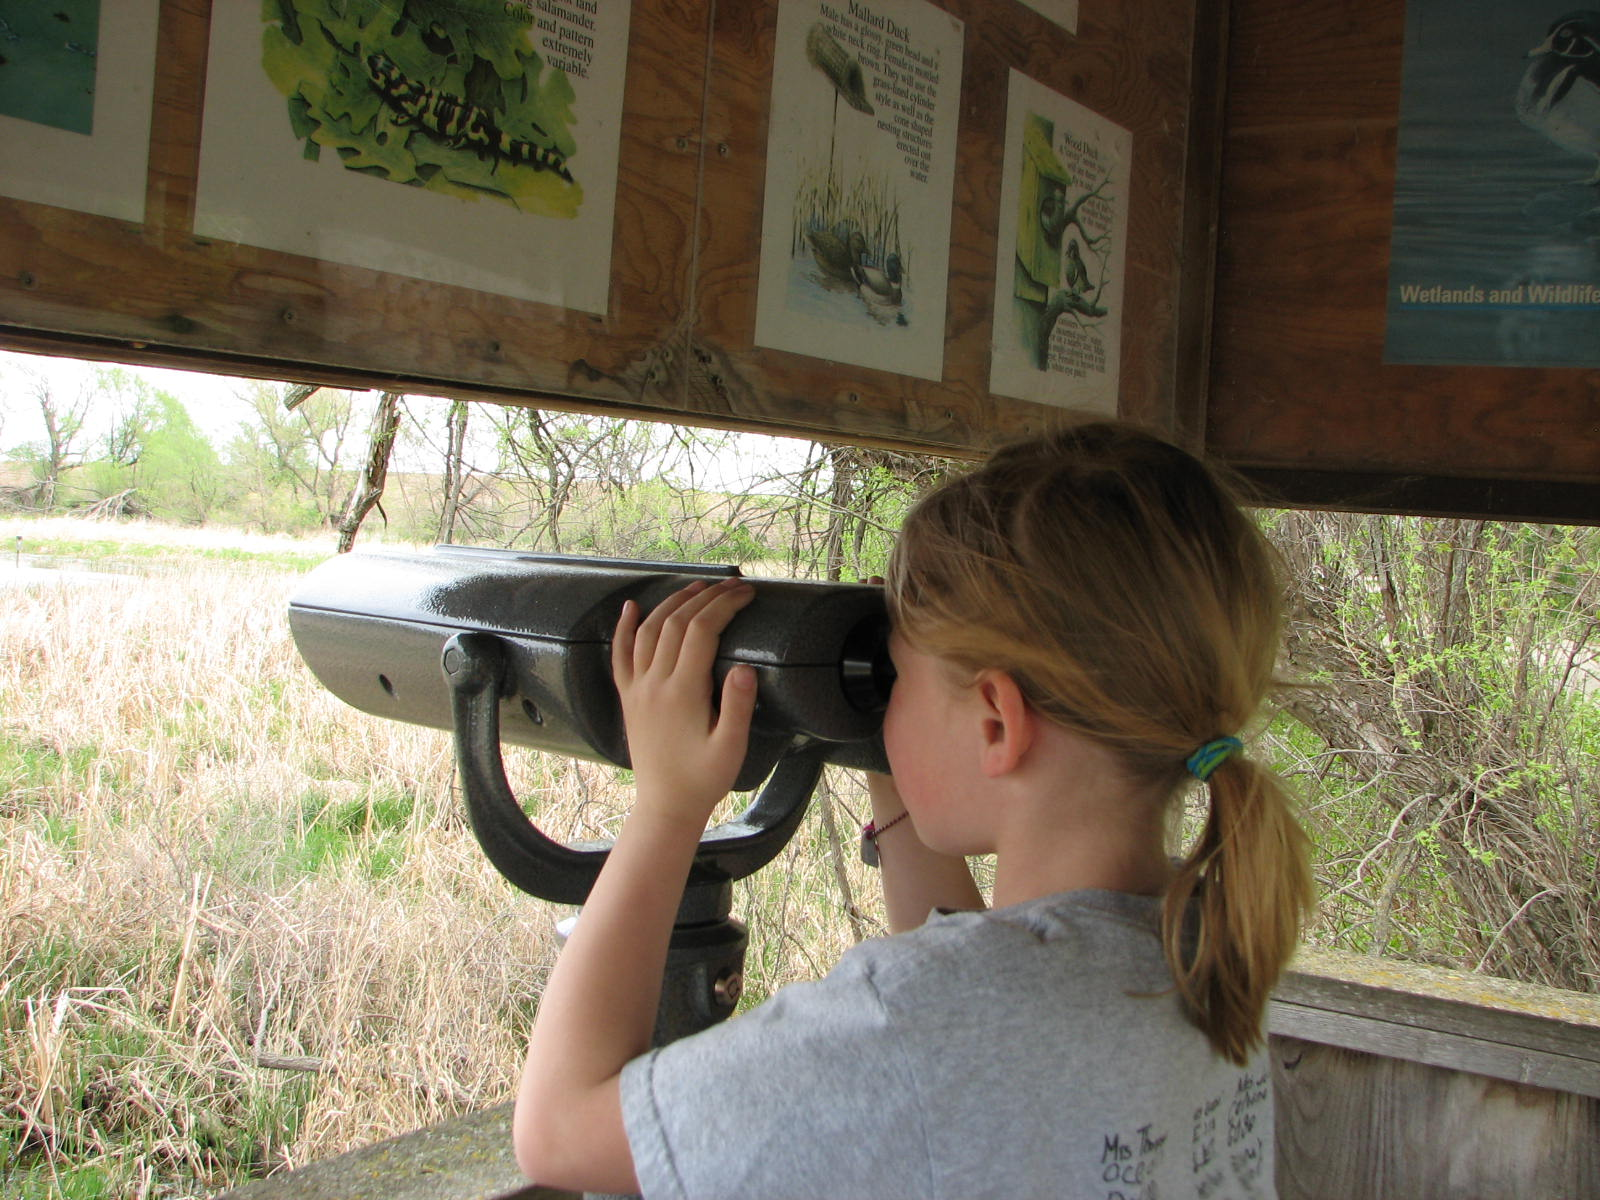 Viewing Binoculars